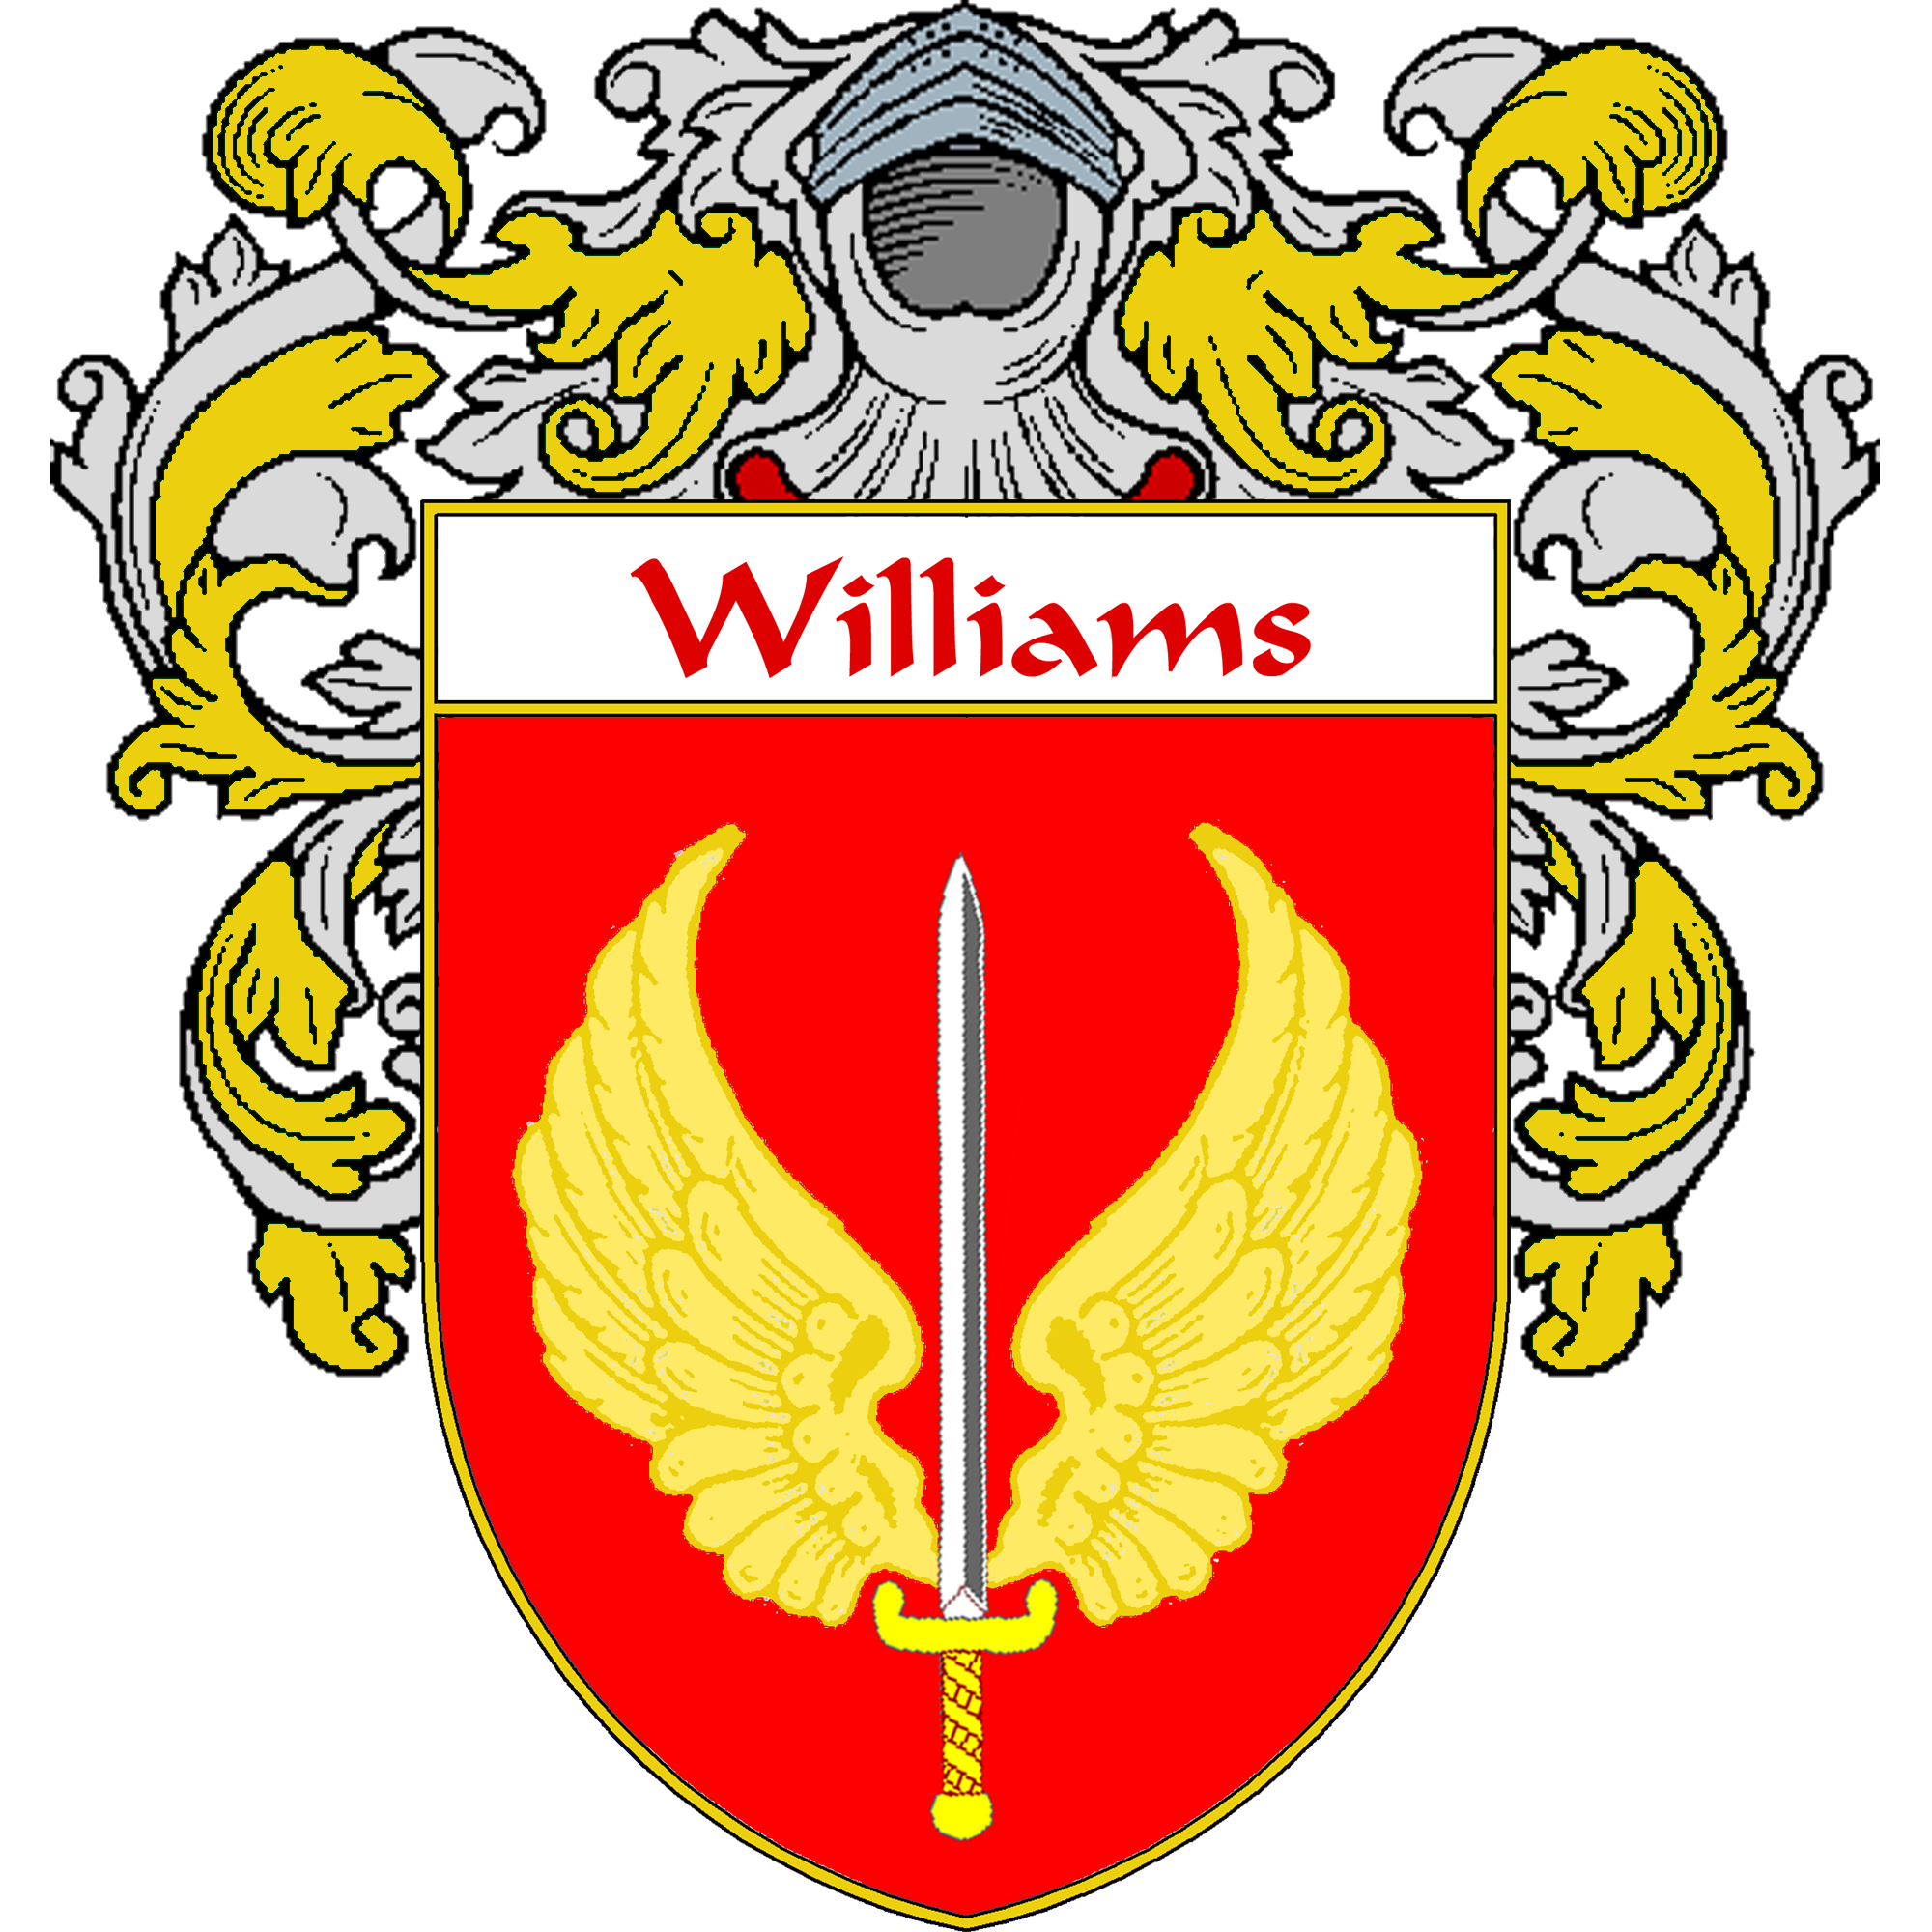 Coat of arms by name coat of arms celebrate your irish coat of arms by name coat of arms celebrate your irish shield tattoonational symbolsfamily biocorpaavc Image collections